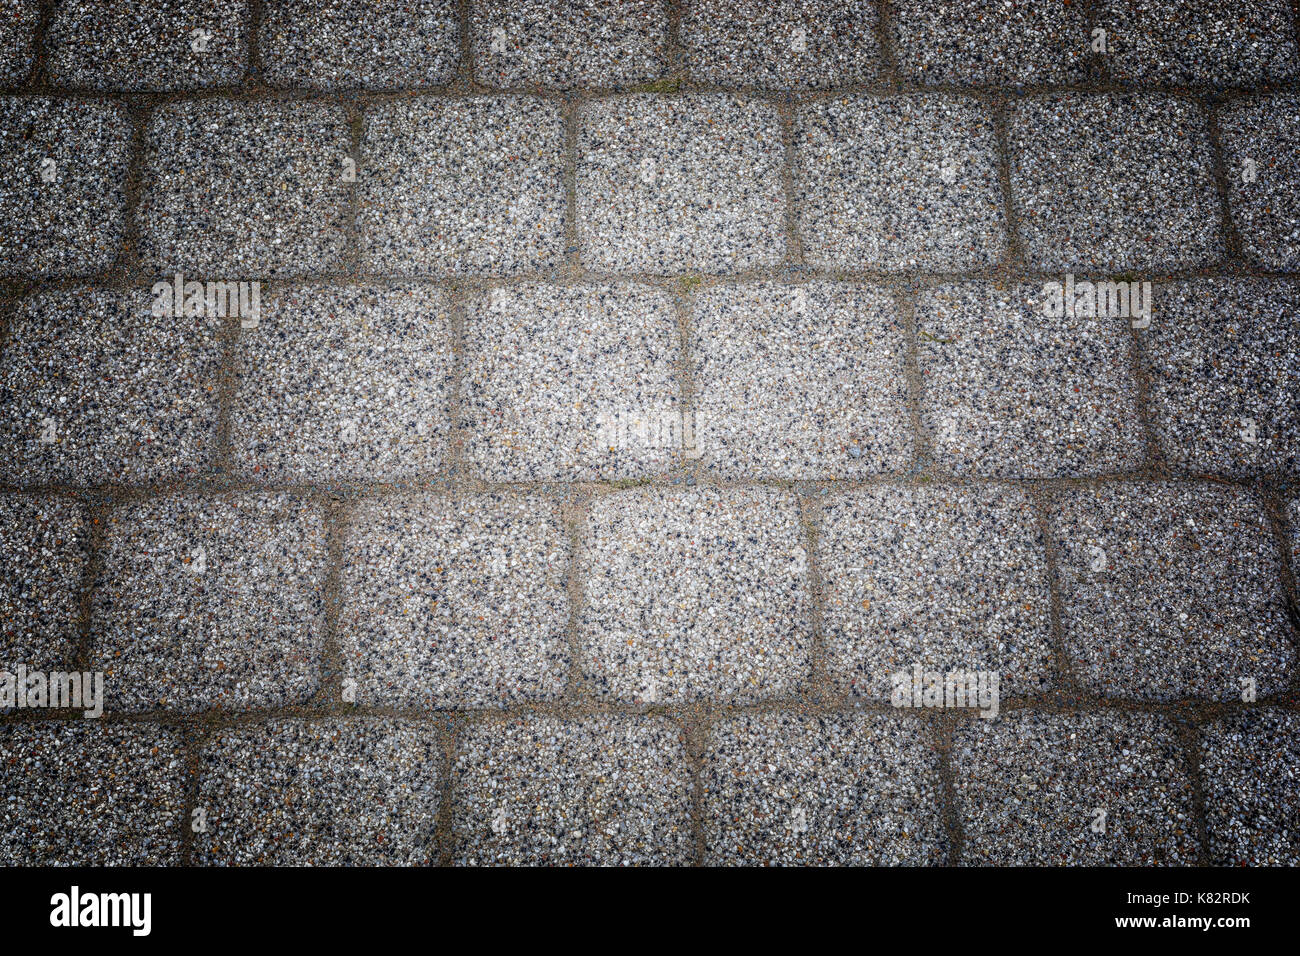 Abstract background of old cobblestone pavement texture with natural patterns view from above. - Stock Image